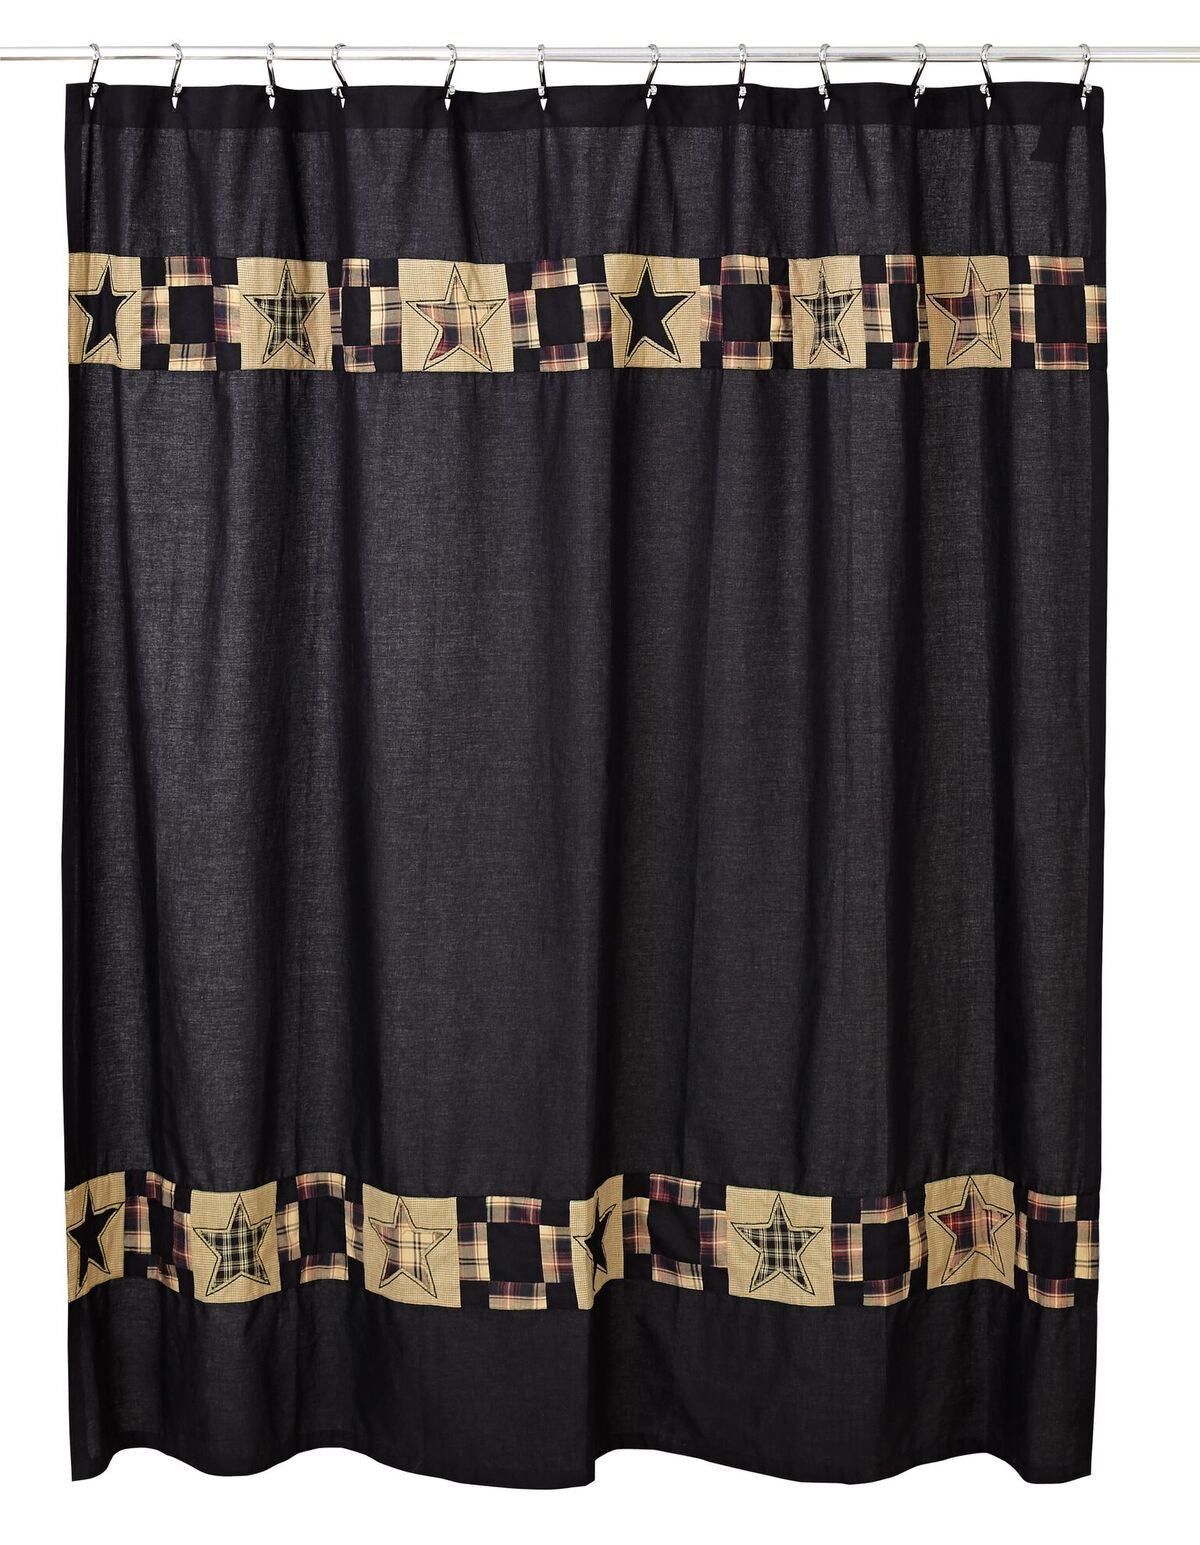 PRIMITIVE//COUNTRY BRADFORD SHOWER CURTAIN